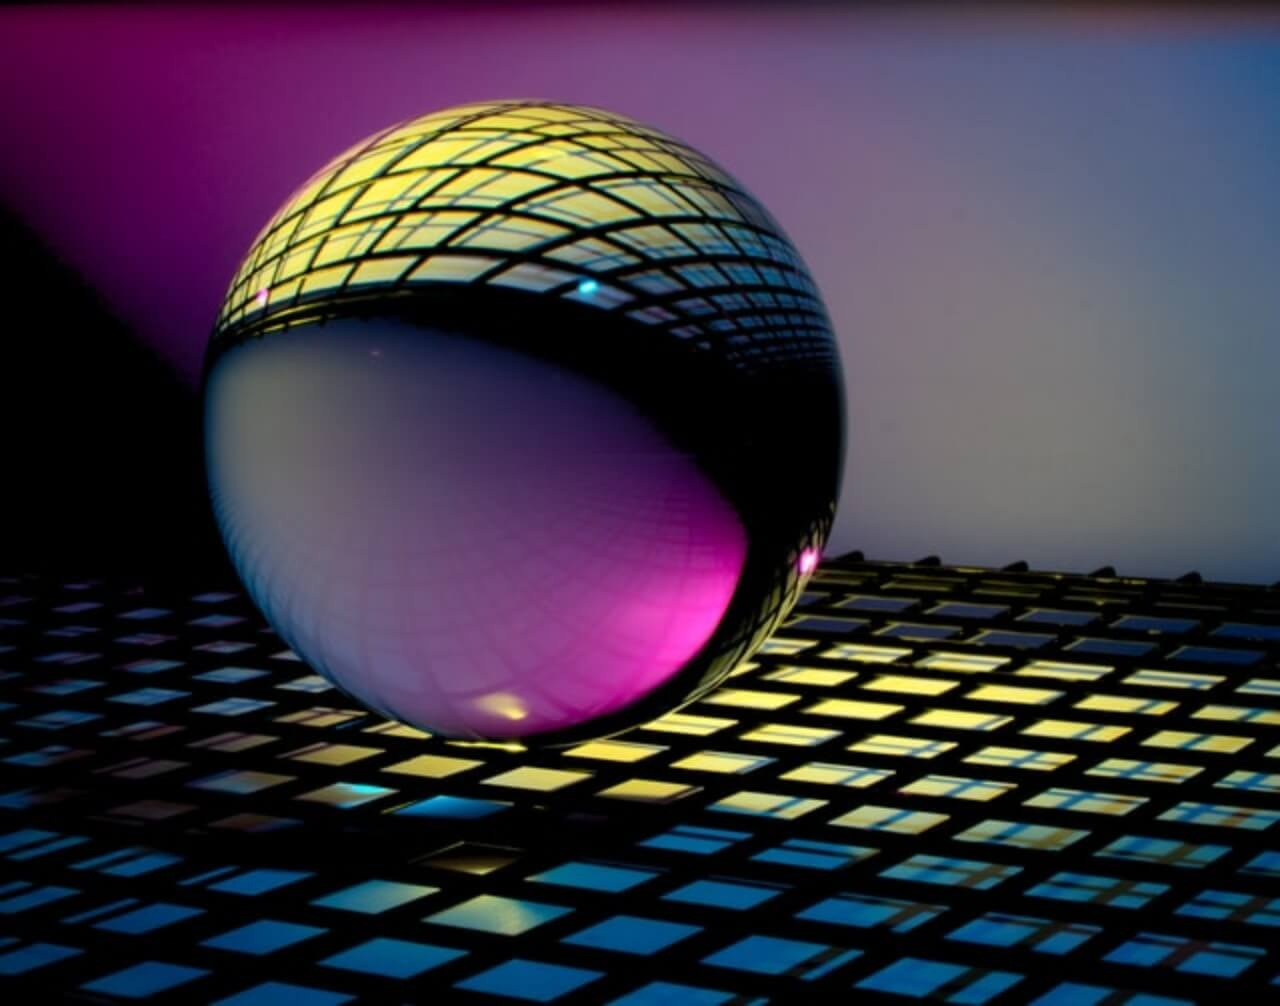 techniques-auto-suggestion-sphere-purple-yellow